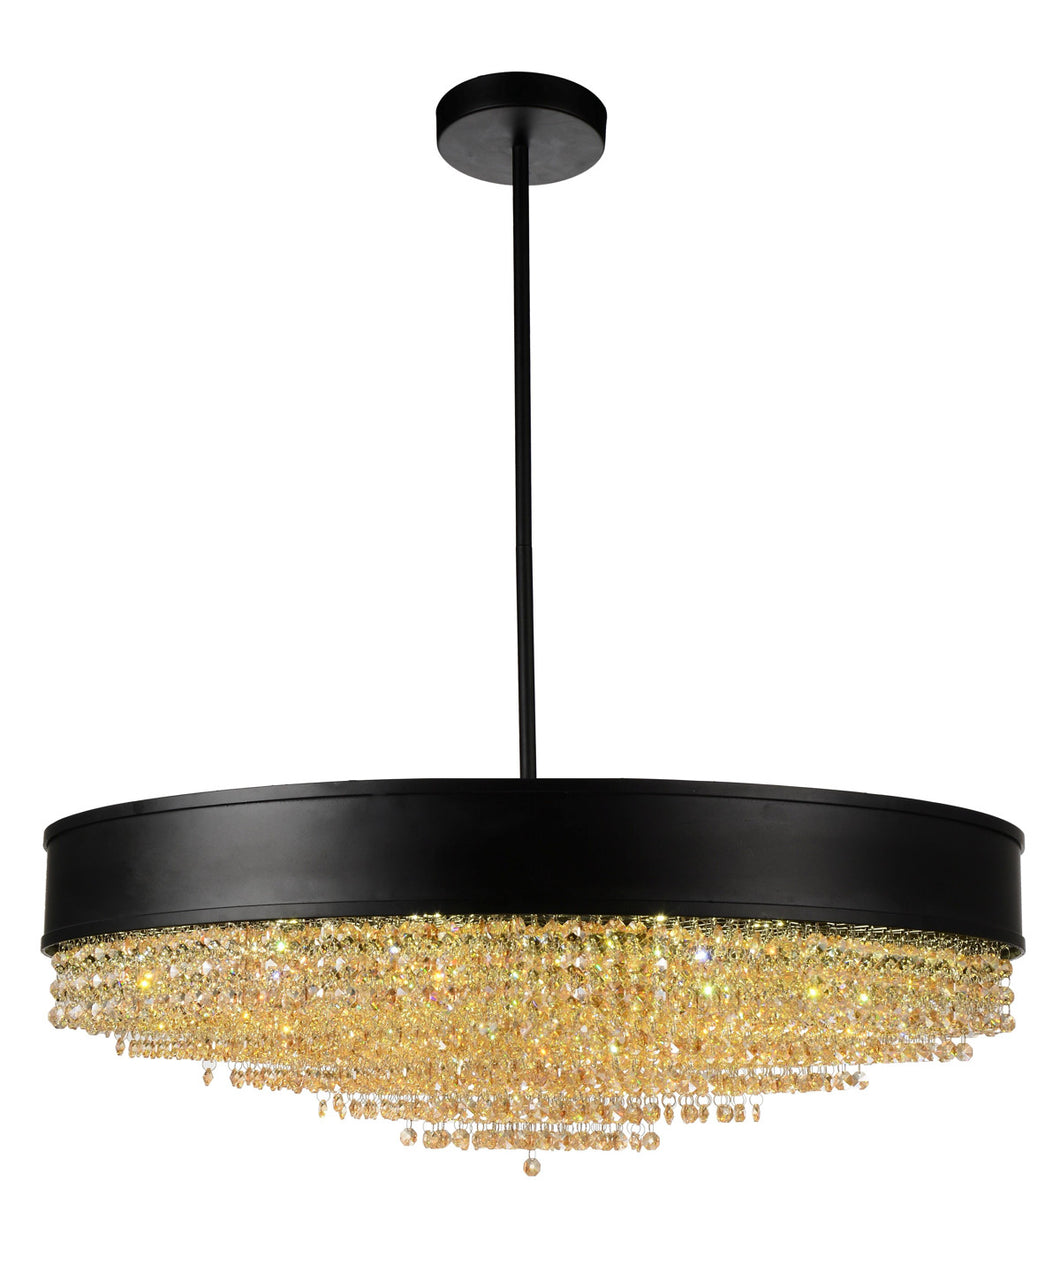 15 Light Drum Shade Chandelier with Black finish